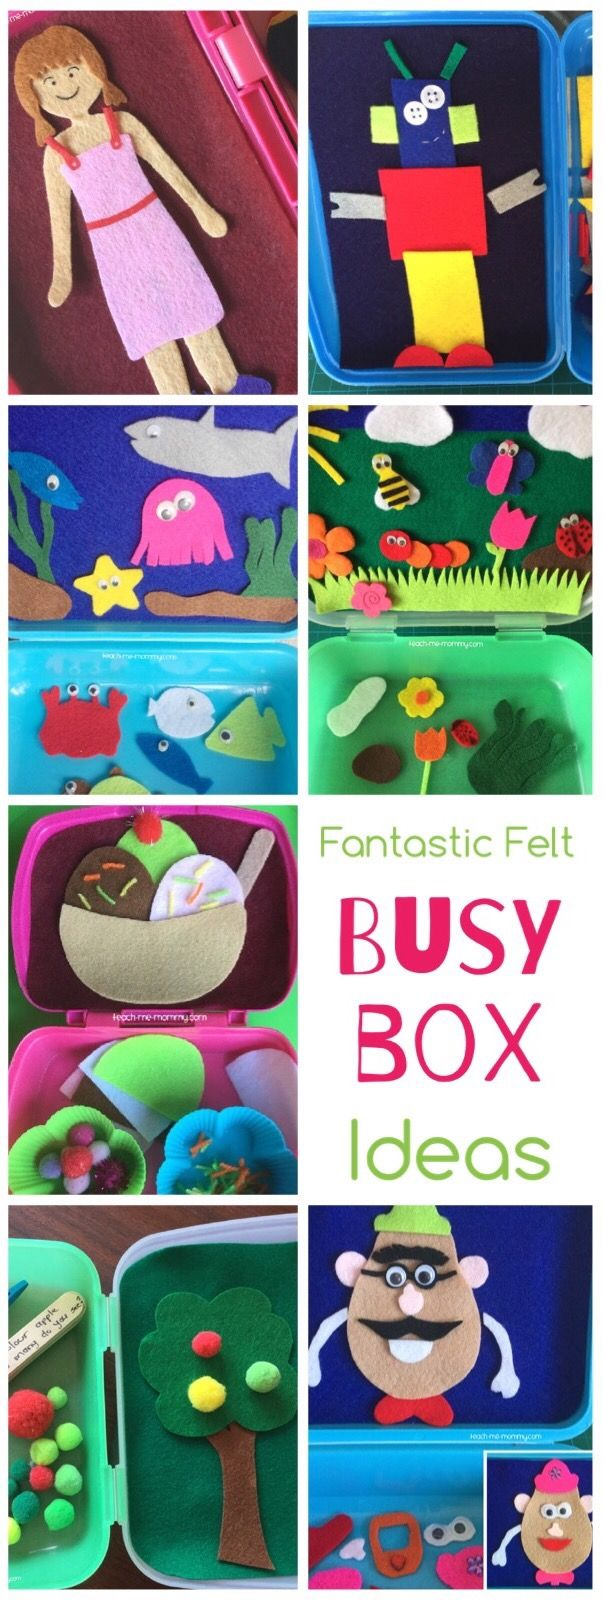 Fantastic Felt Busy Box Ideas